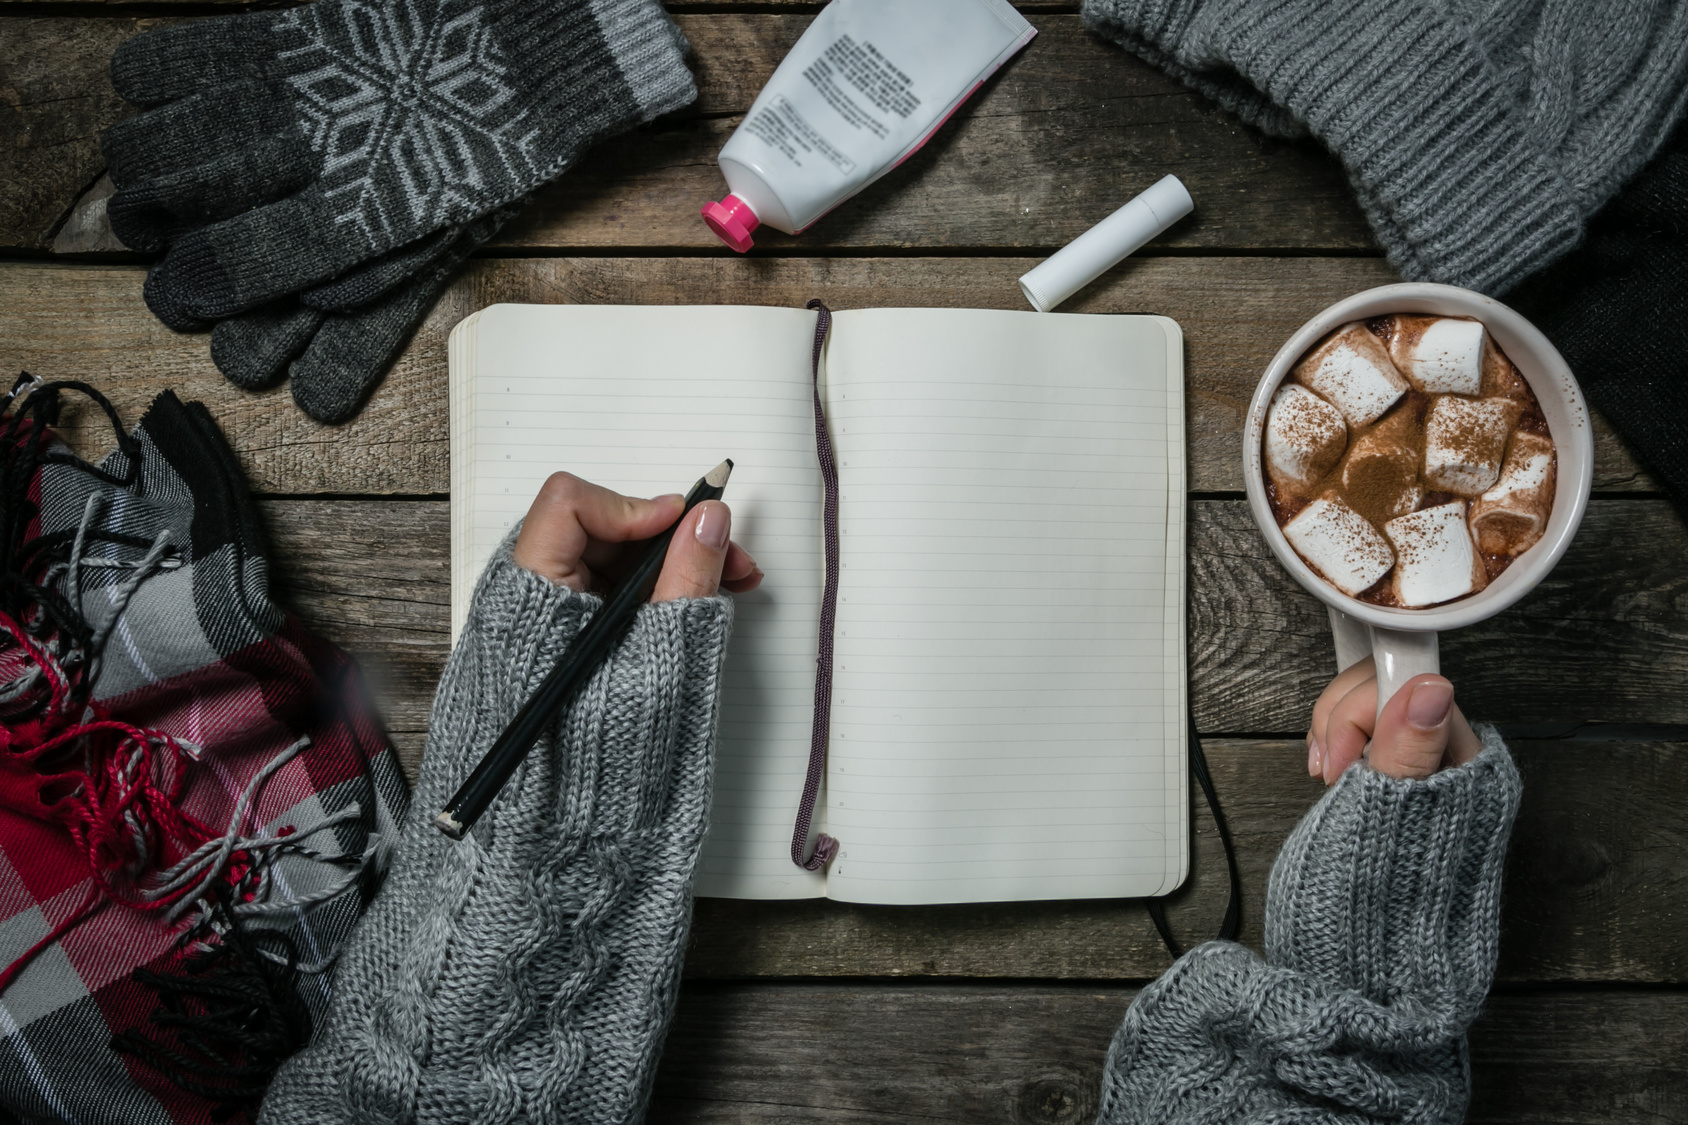 Winter weather survival kit concept. Female hands writing in notebook